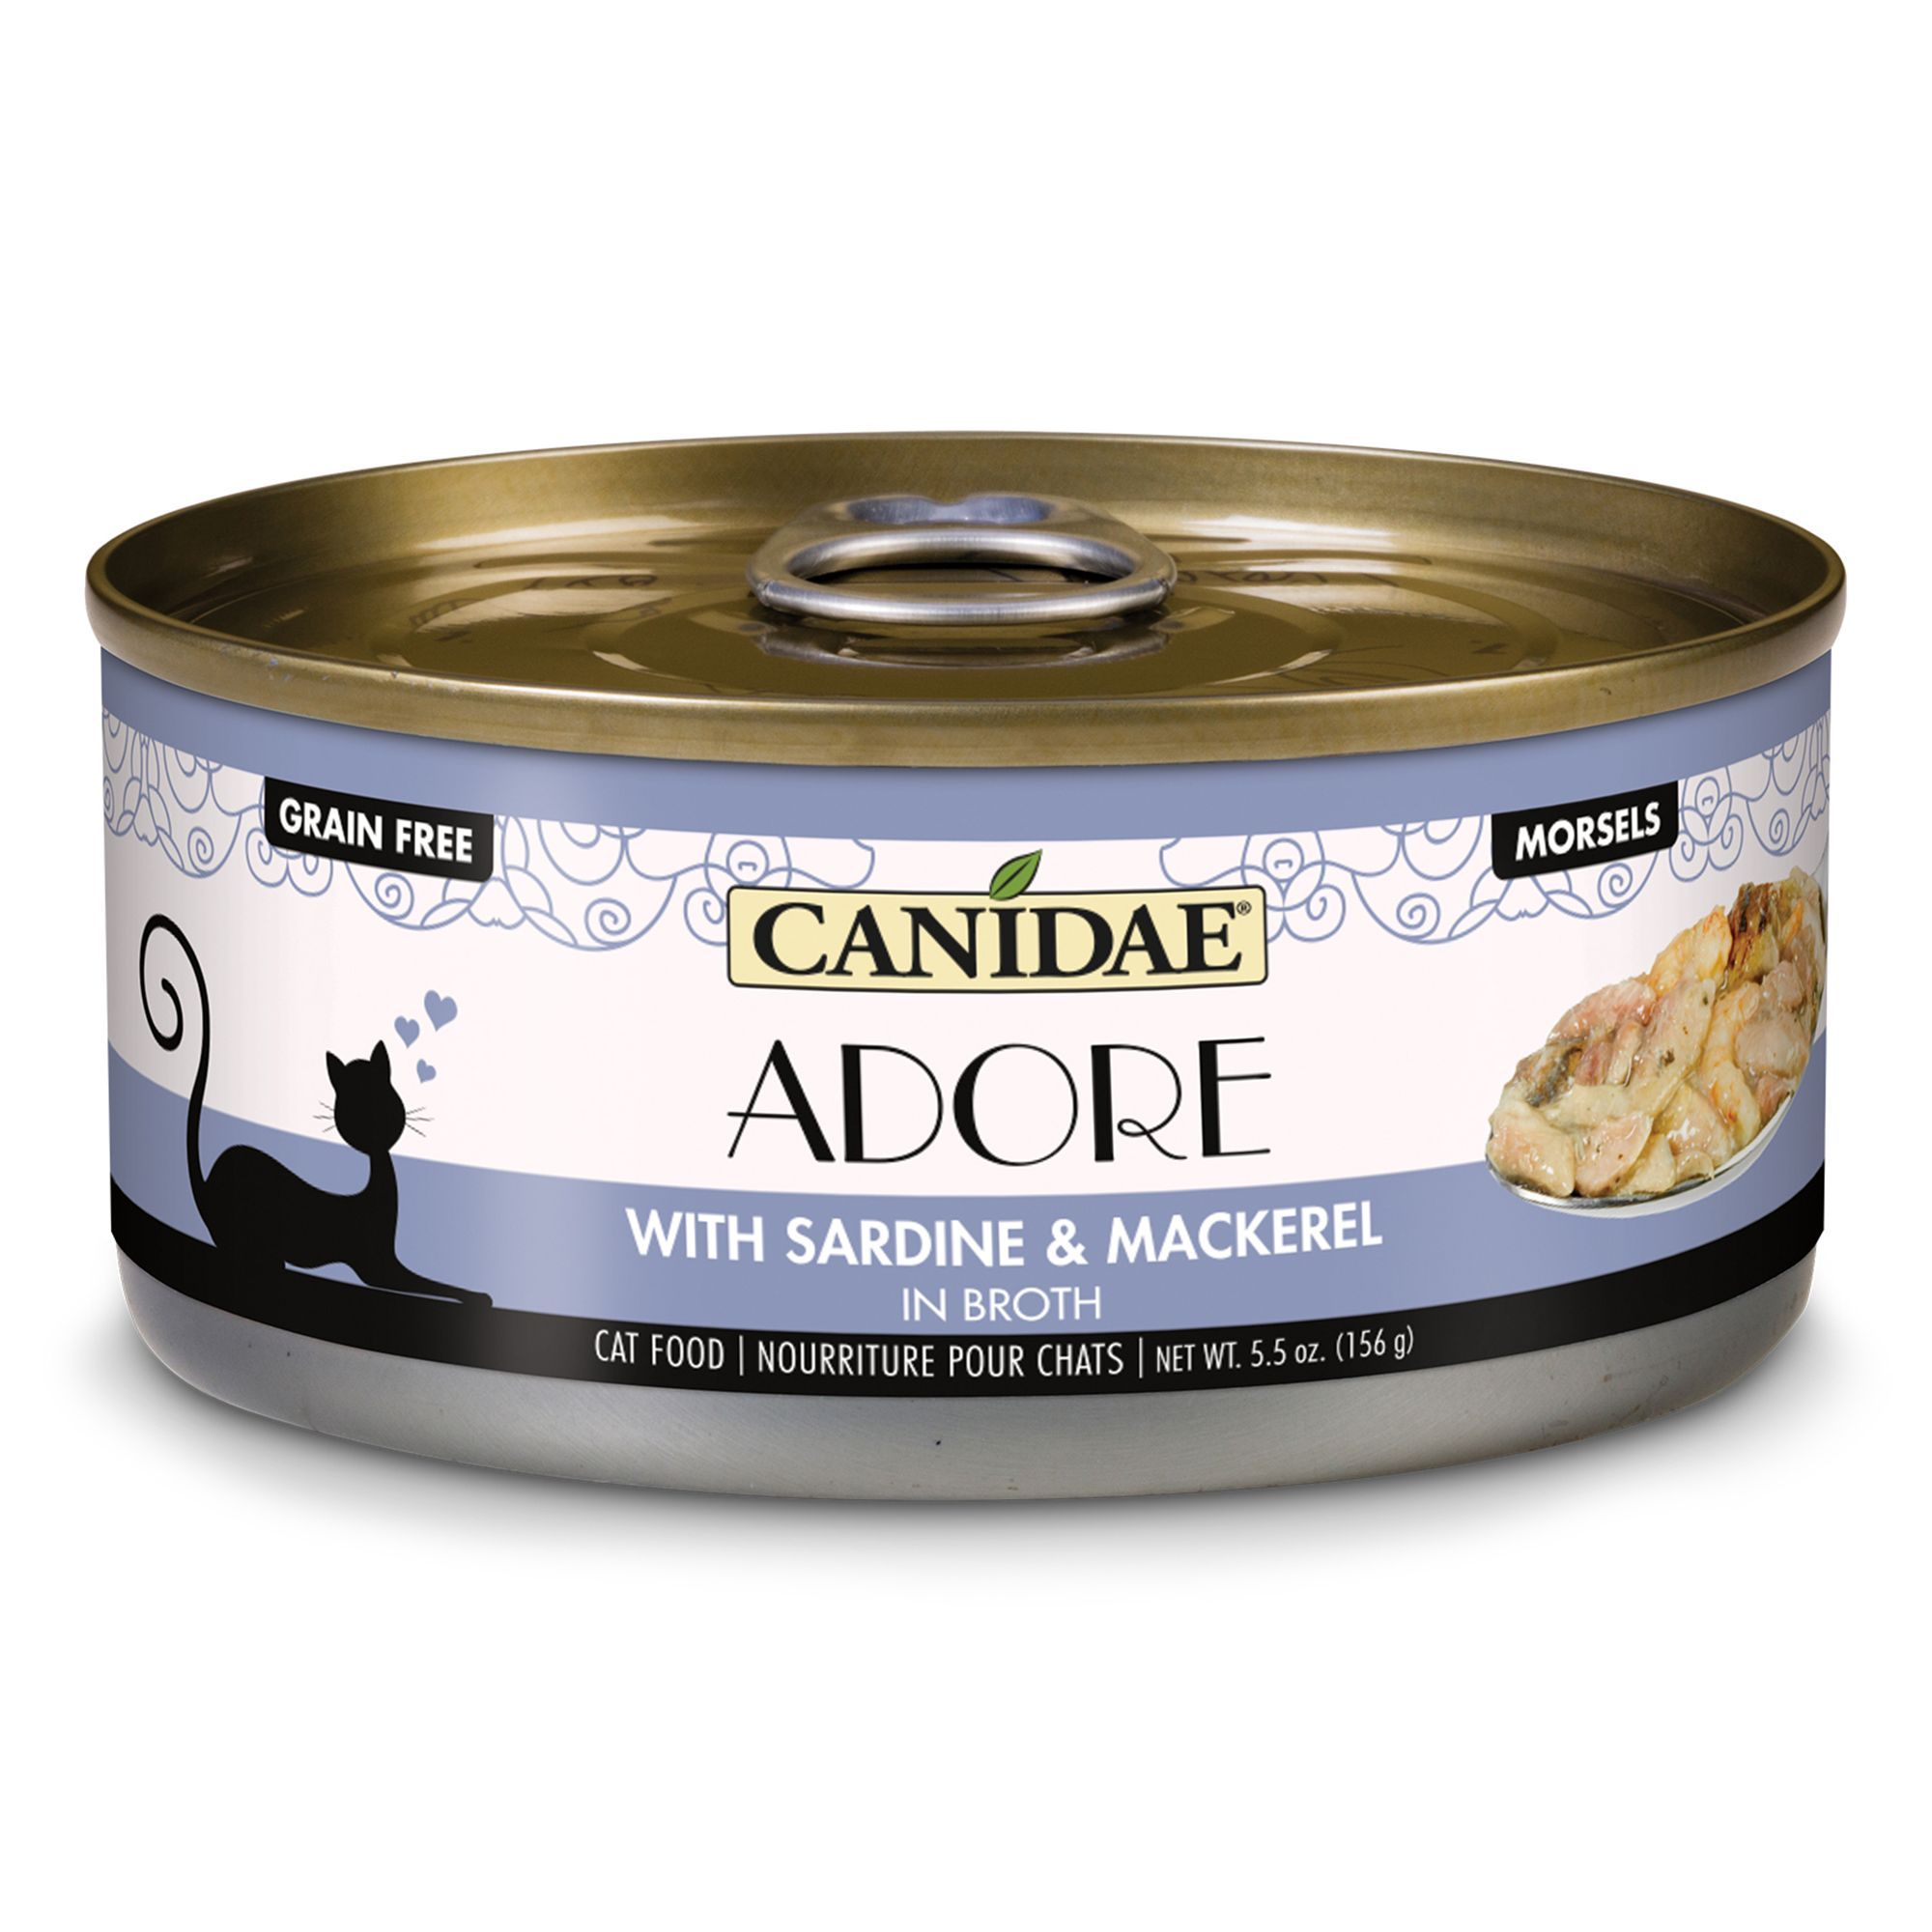 Canidae adore morsels wet cat food natural grain free